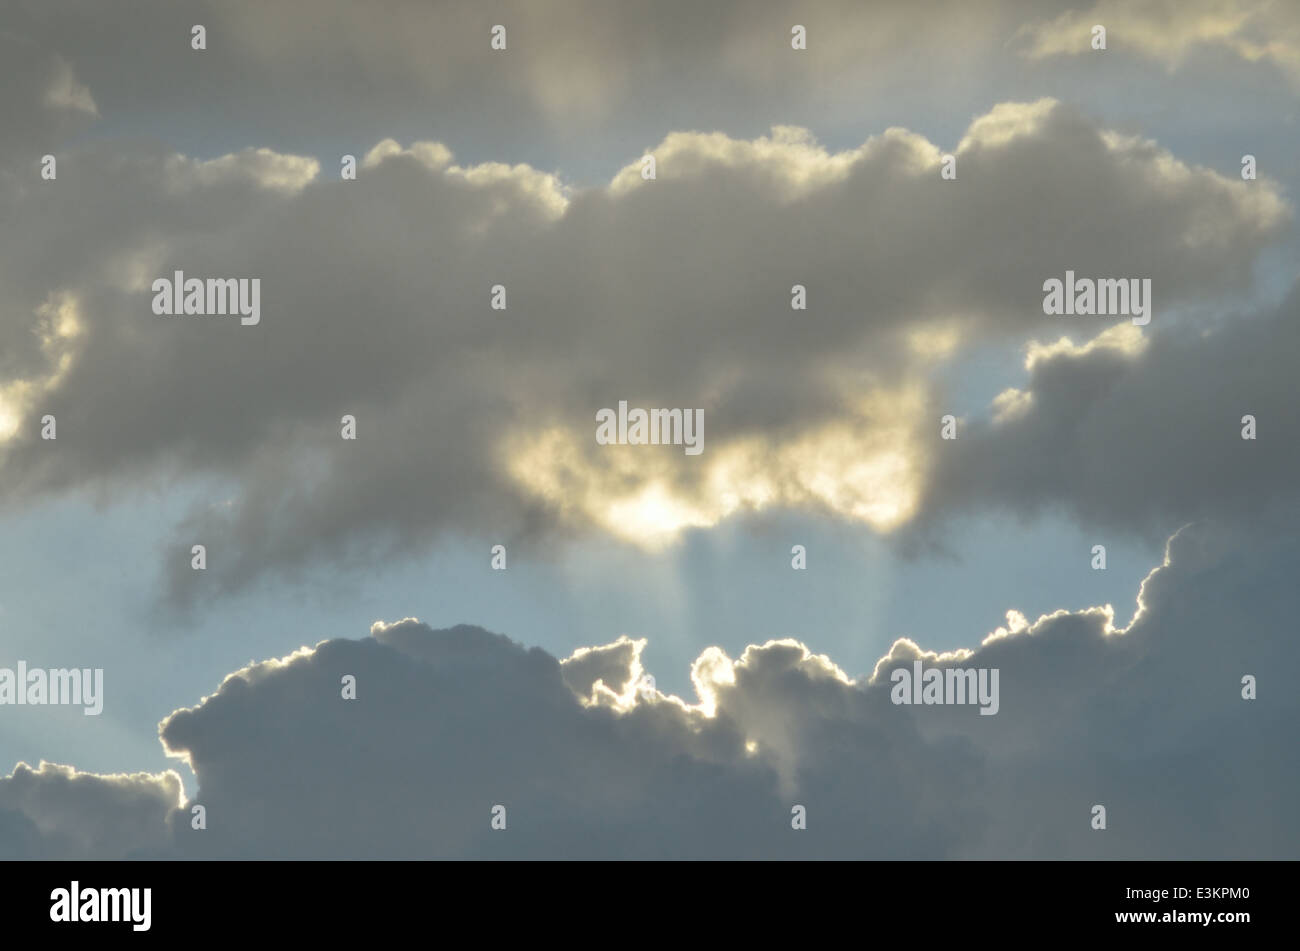 Clouds and sunrays - Stock Image